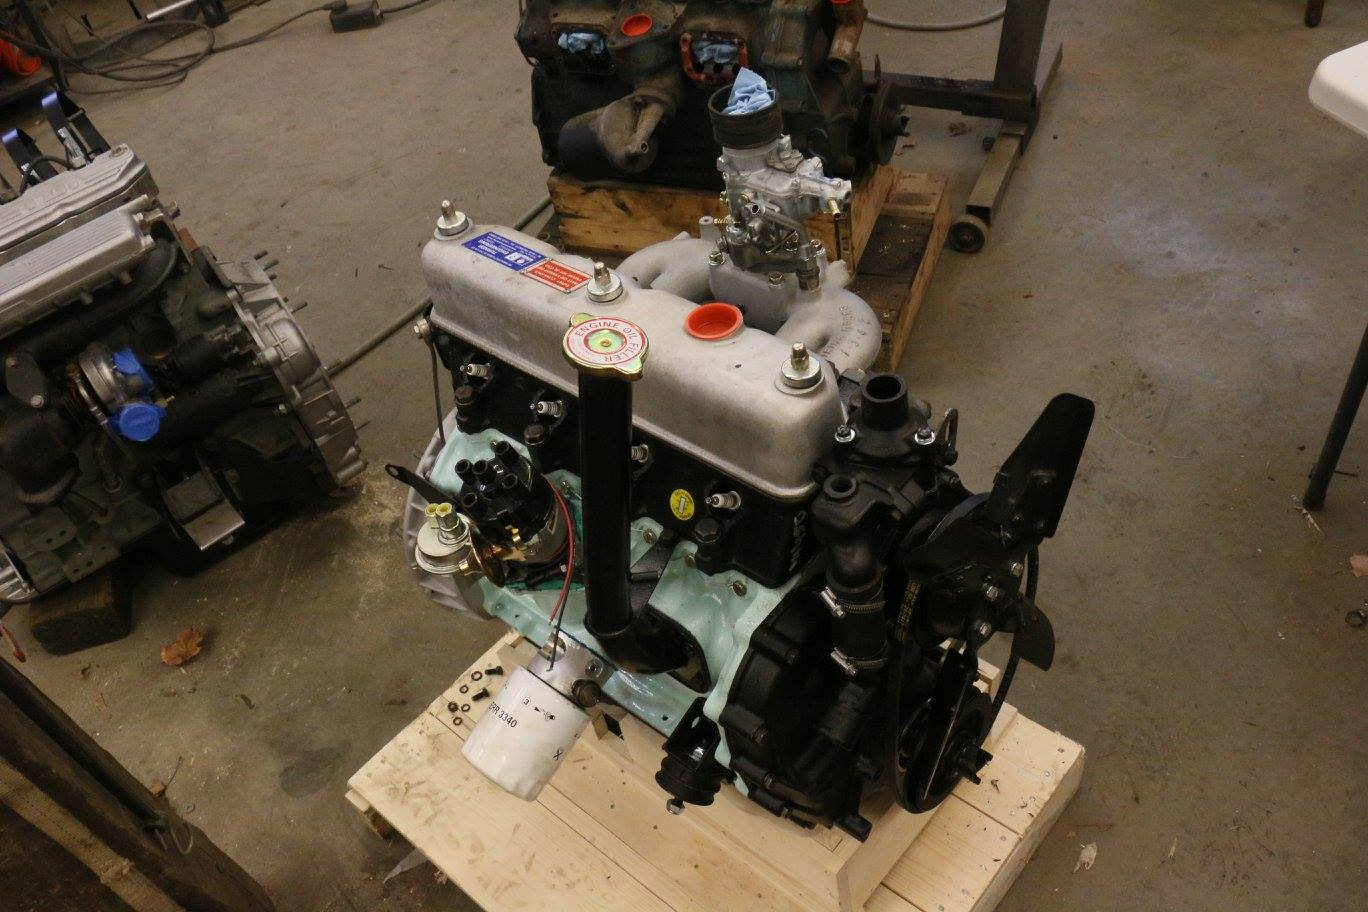 The Turner engine is assembled with a spin-on oil filter conversion, Pertronix distributor, 200tdi fuel pump, and Weber carbereuter.